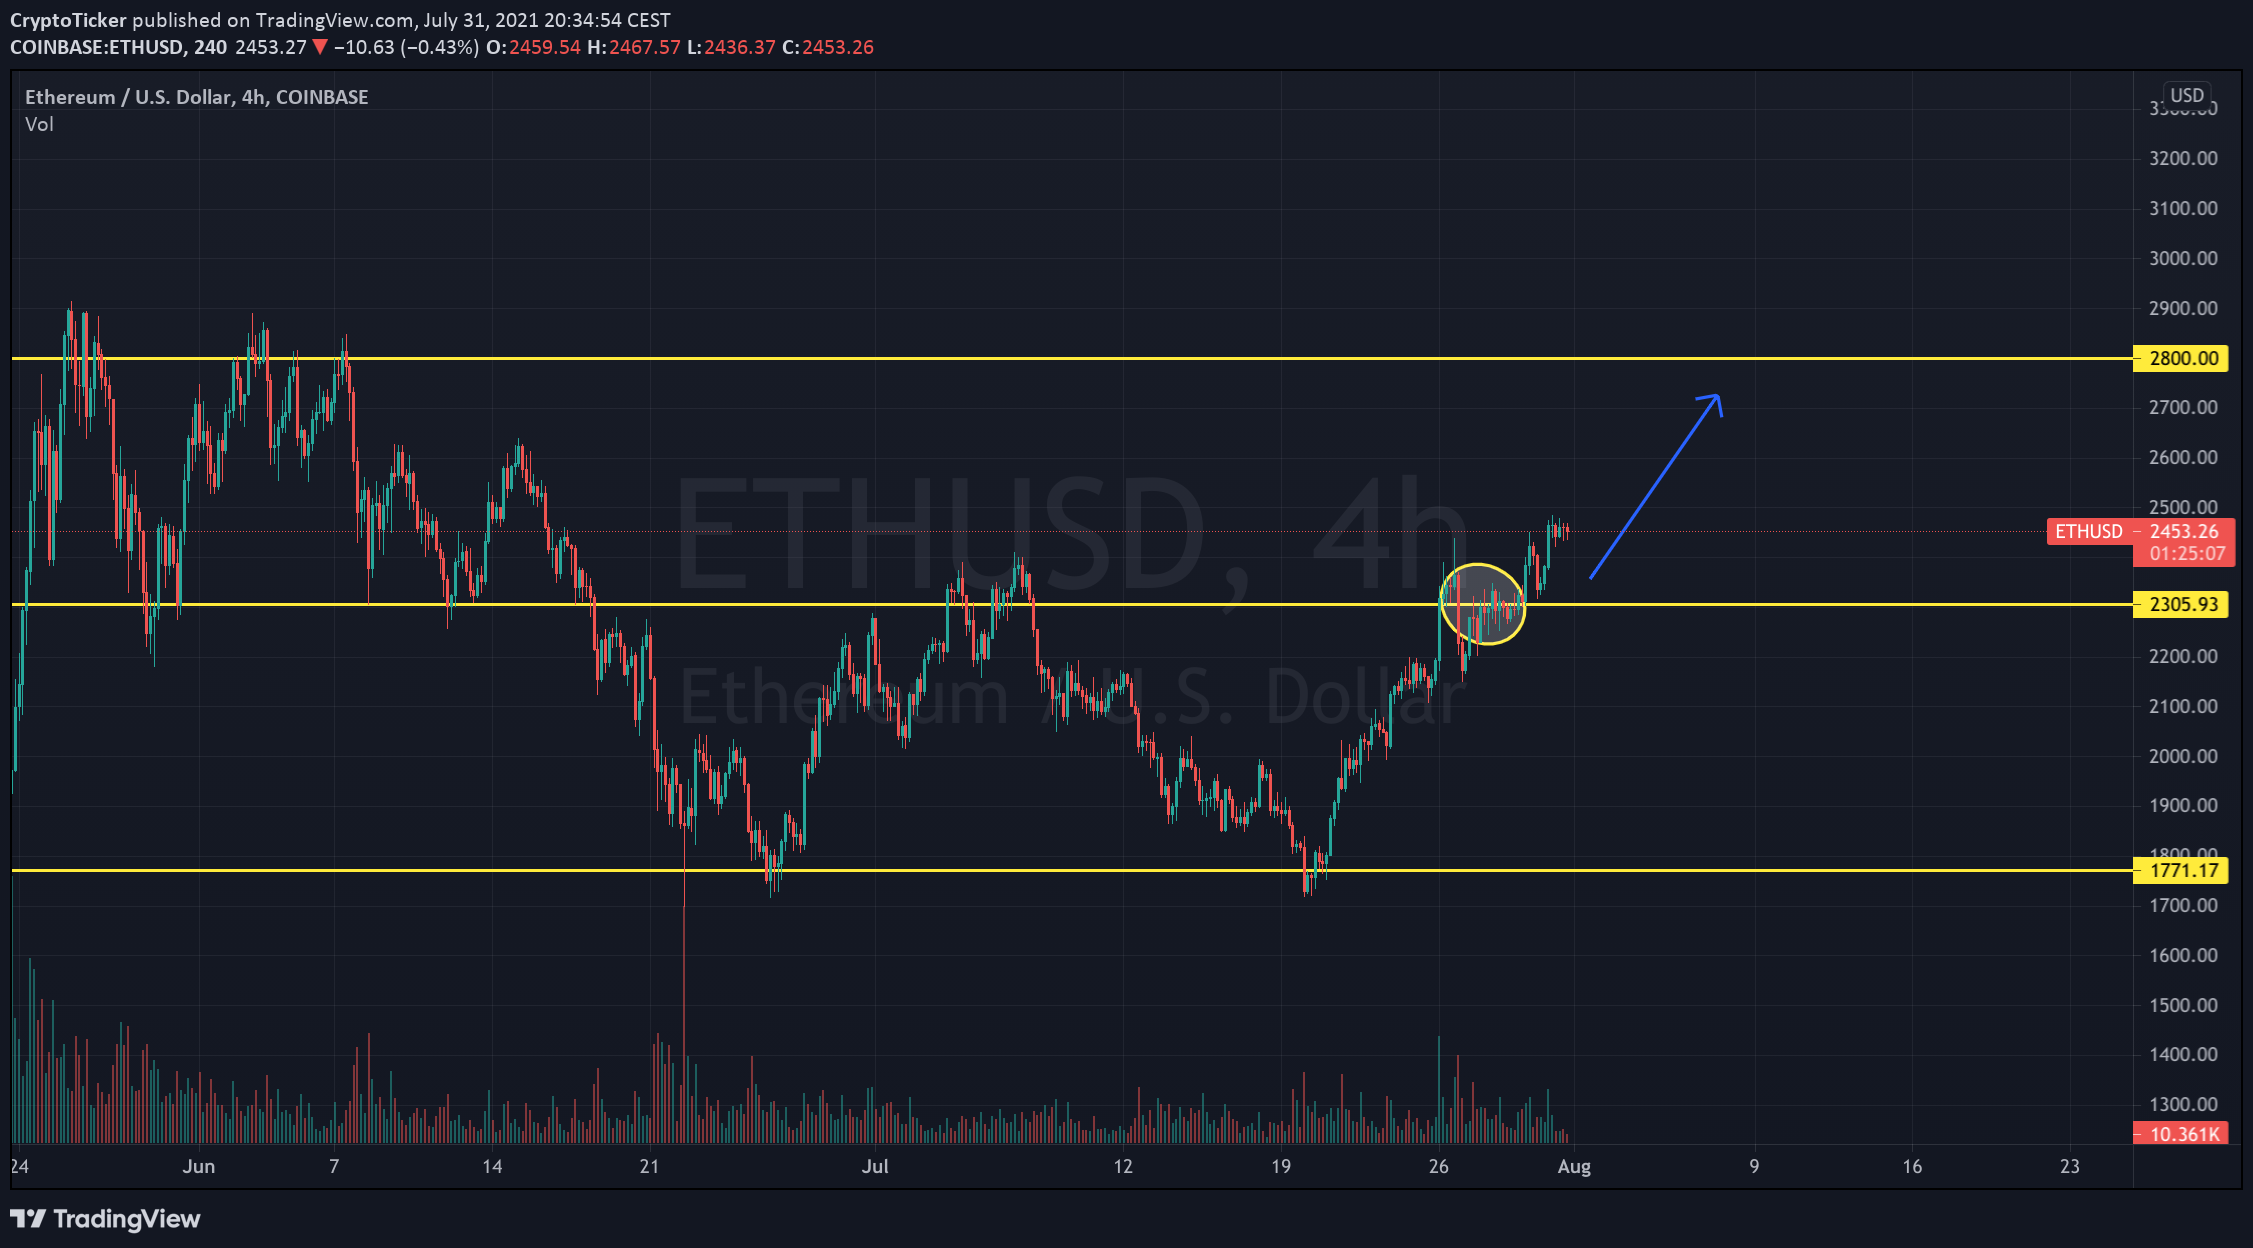 Ethereum price prediction - Road to Ether 3K